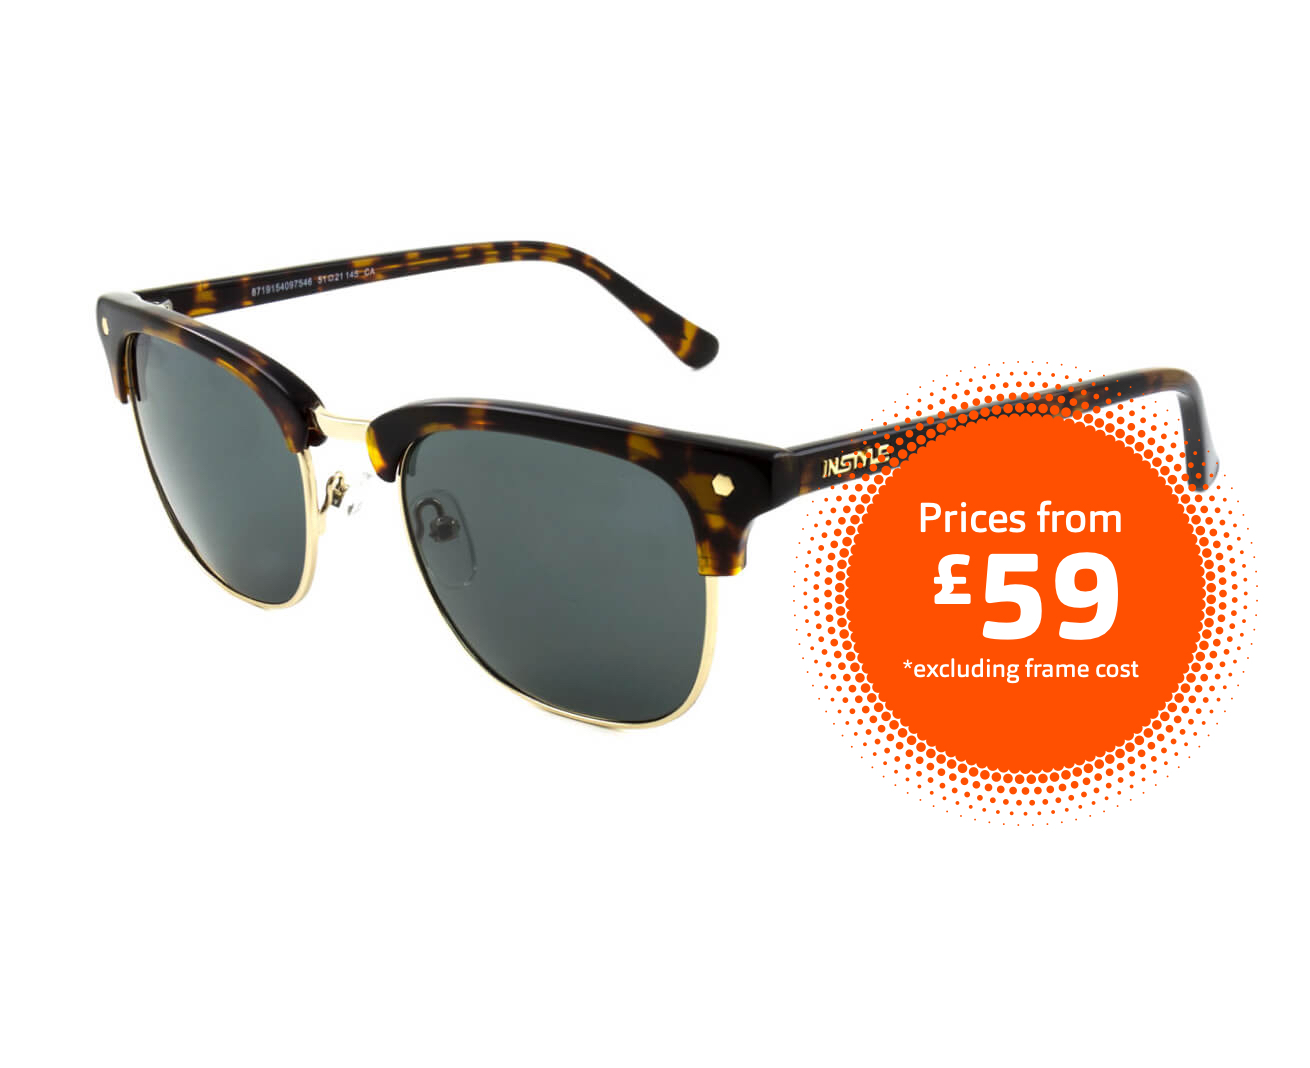 Sunglasses frames from £59